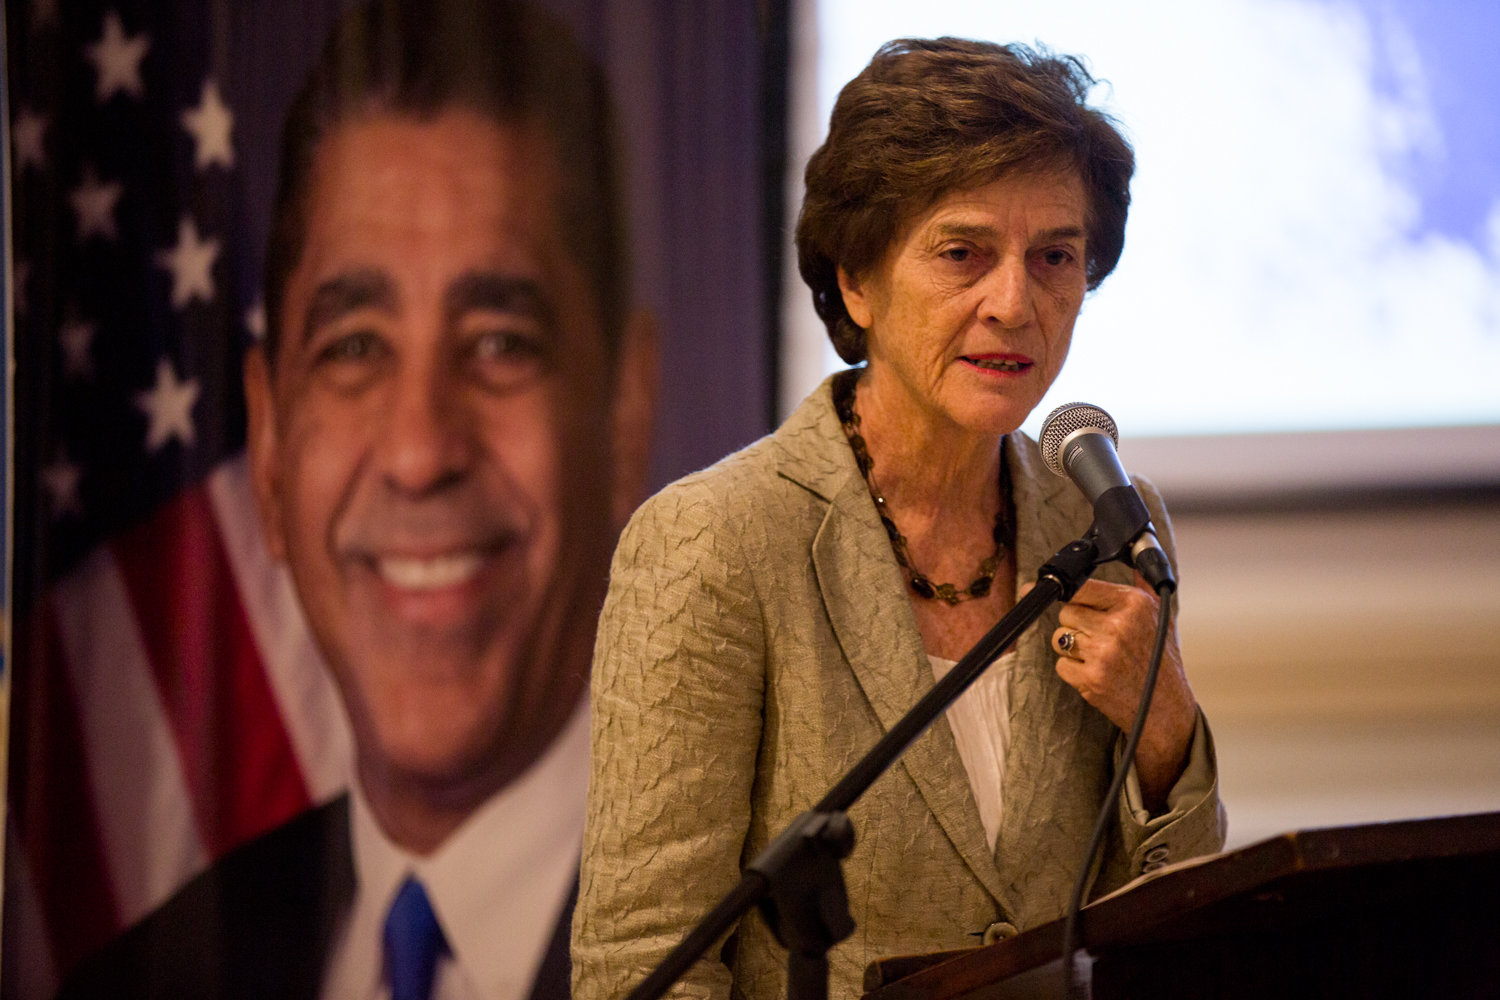 Former U.S. Rep. Elizabeth Holtzman sees a solid case for the impeachment of Donald Trump during a forum hosted in Washington Heights by U.S. Rep. Adriano Espaillat on Oct. 7.